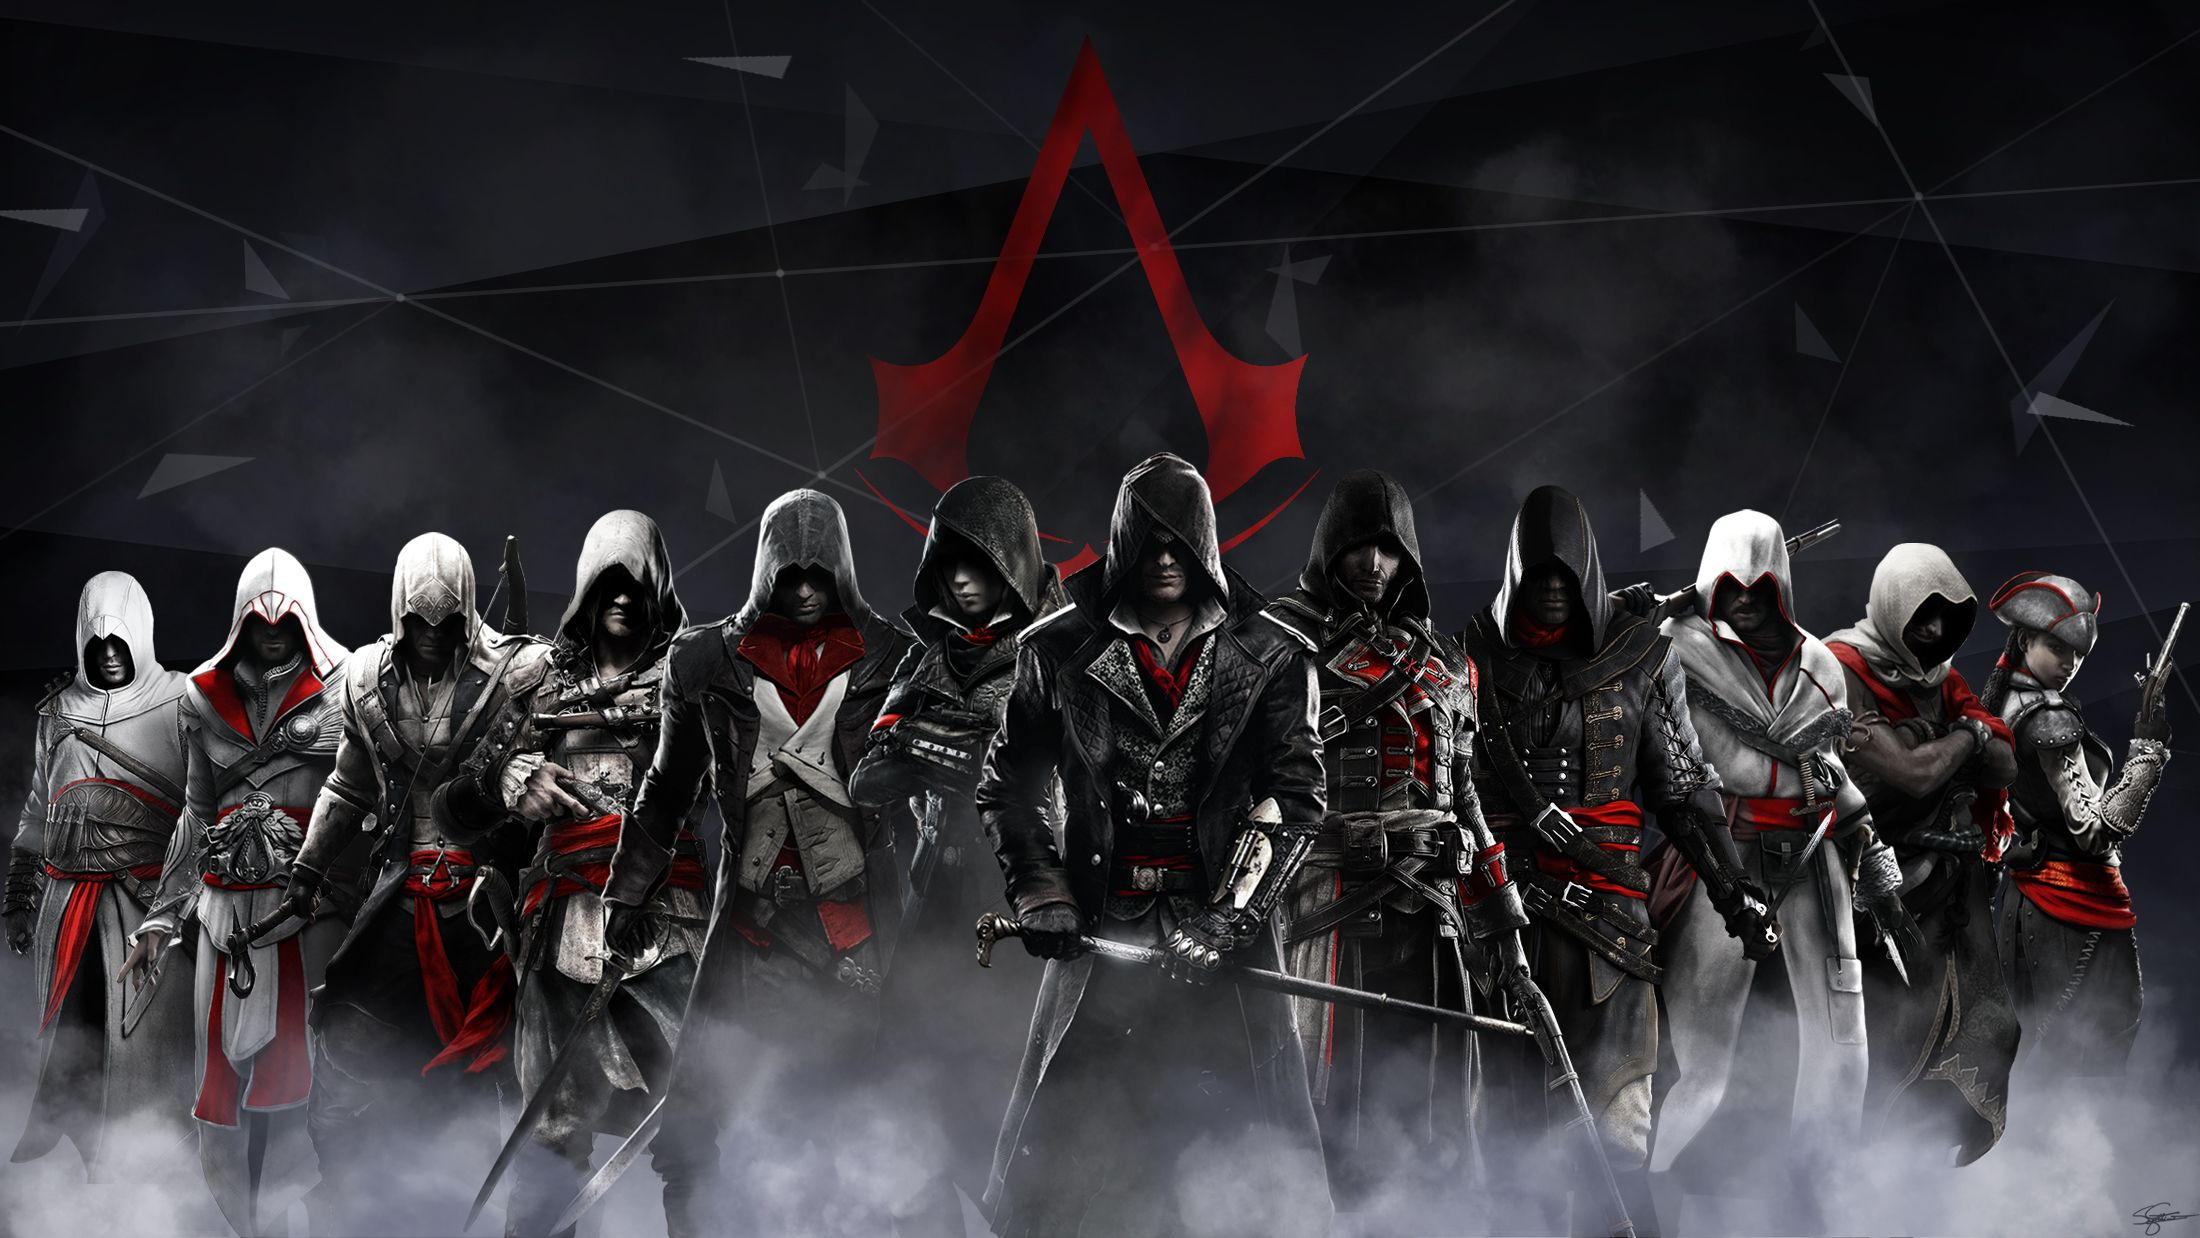 All Of The Assassins Assassin S Creed Wallpaper Assassin S Creed Hd All Assassin S Creed